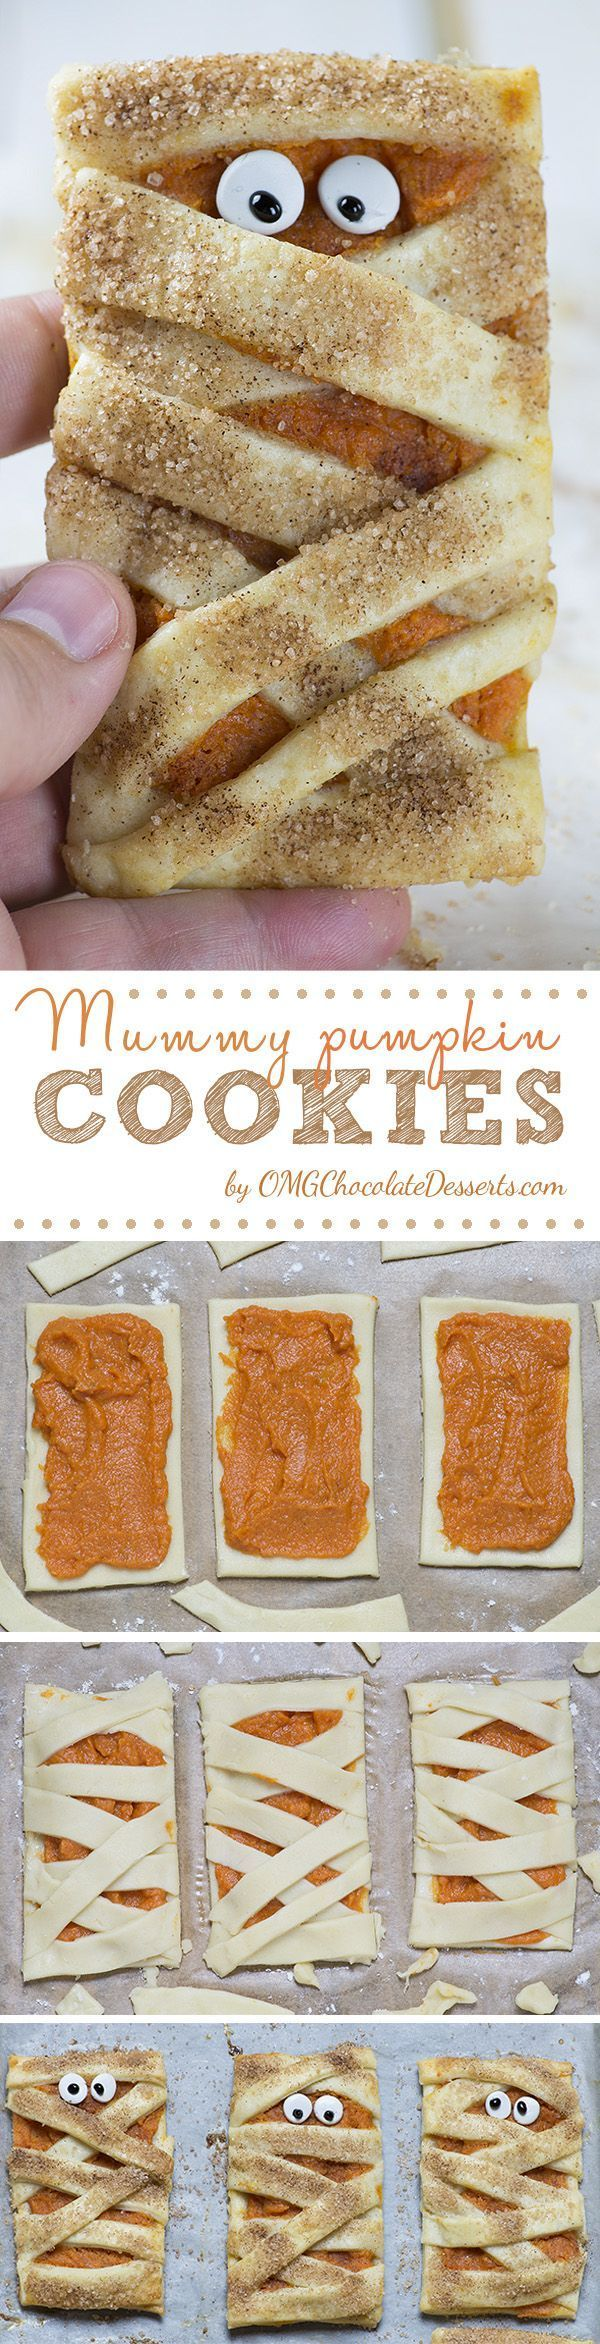 If you want a beautiful treat in the shape of frightening mummies for the upcoming Halloween, then these Mummy Pumpkin Cookies will be as much about fun as about taste.